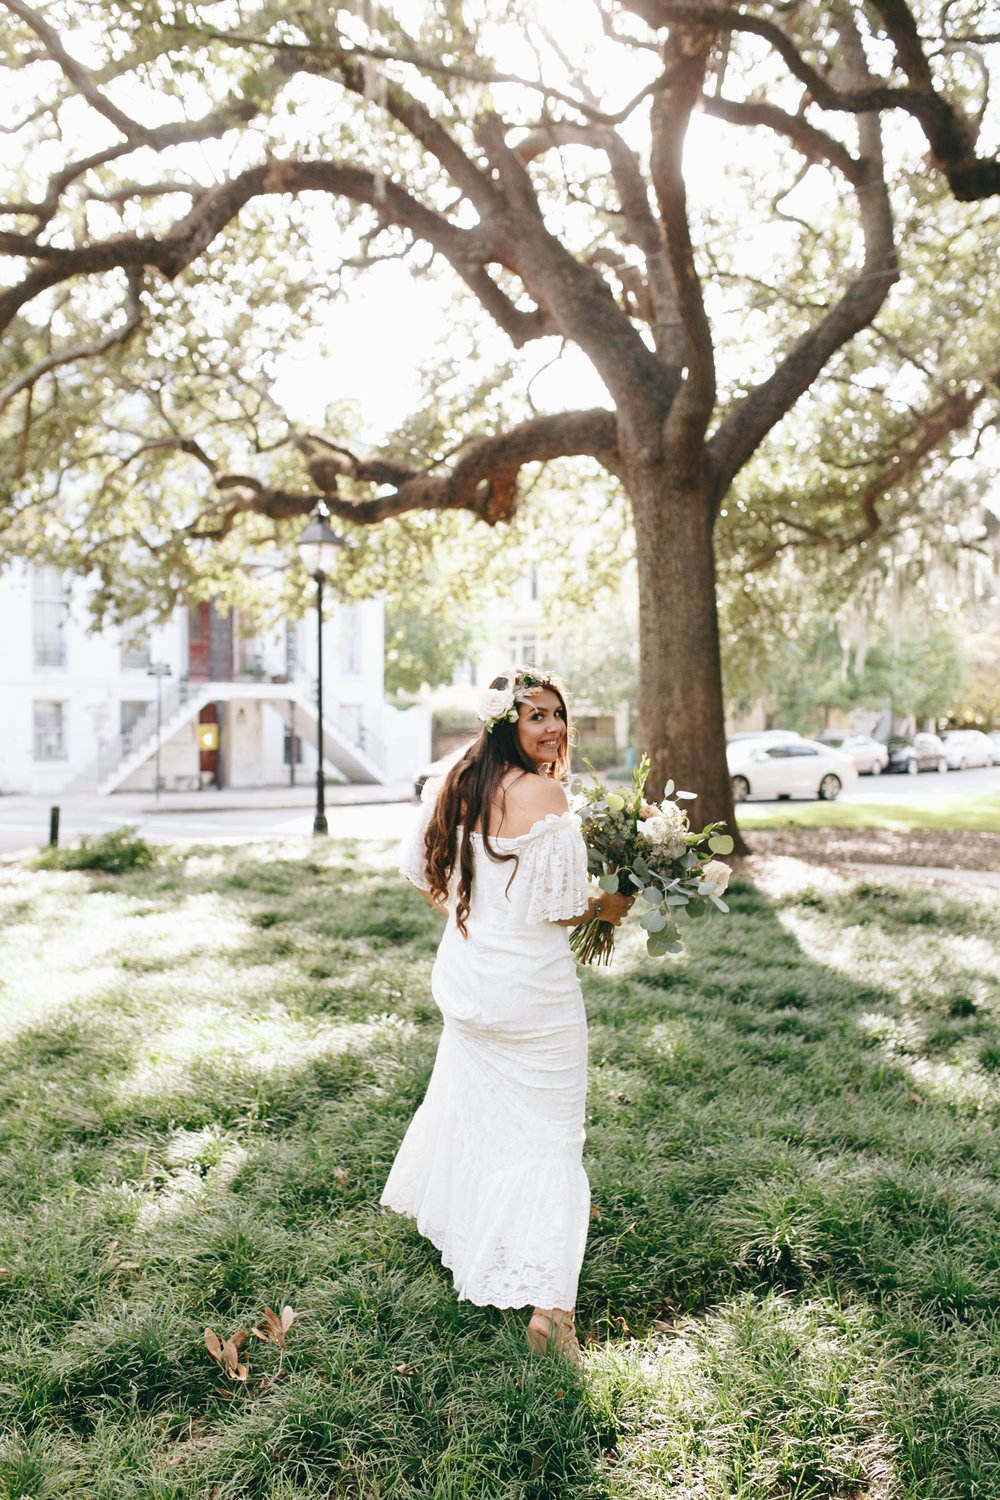 darling-juliet-photography-ivory-and-beau-bridal-boutique-savannah-wedding-dresses-savannah-bridal-gowns-daughters-of-simone-winnie-savannah-florist-boho-wedding-savannah-boho-wedding-roundhouse-railroad-musuem-wedding-17.jpg